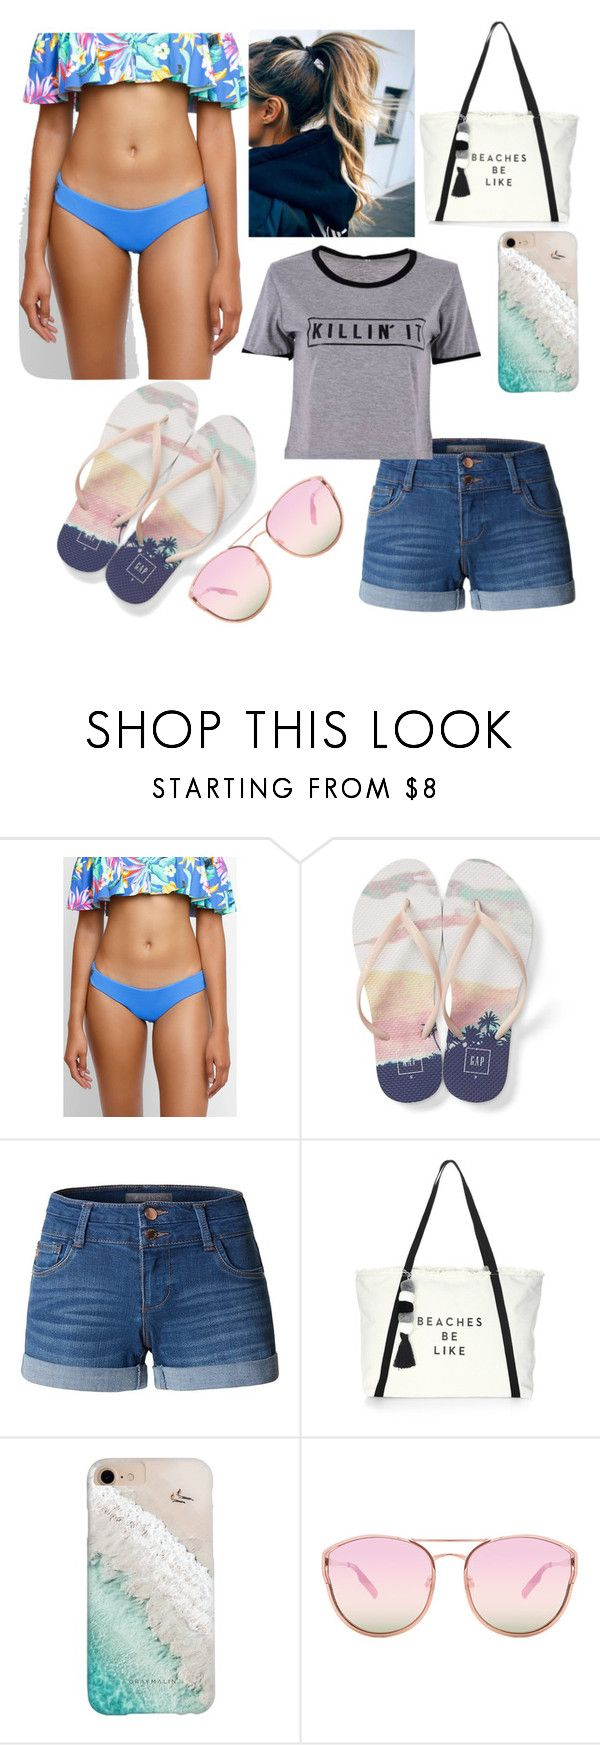 """""""vacation day 2. visiting the beach"""" by hannarules37 ❤ liked on Polyvore featuring Maaji, Gap, LE3NO, Milly, Gray Malin and Quay"""